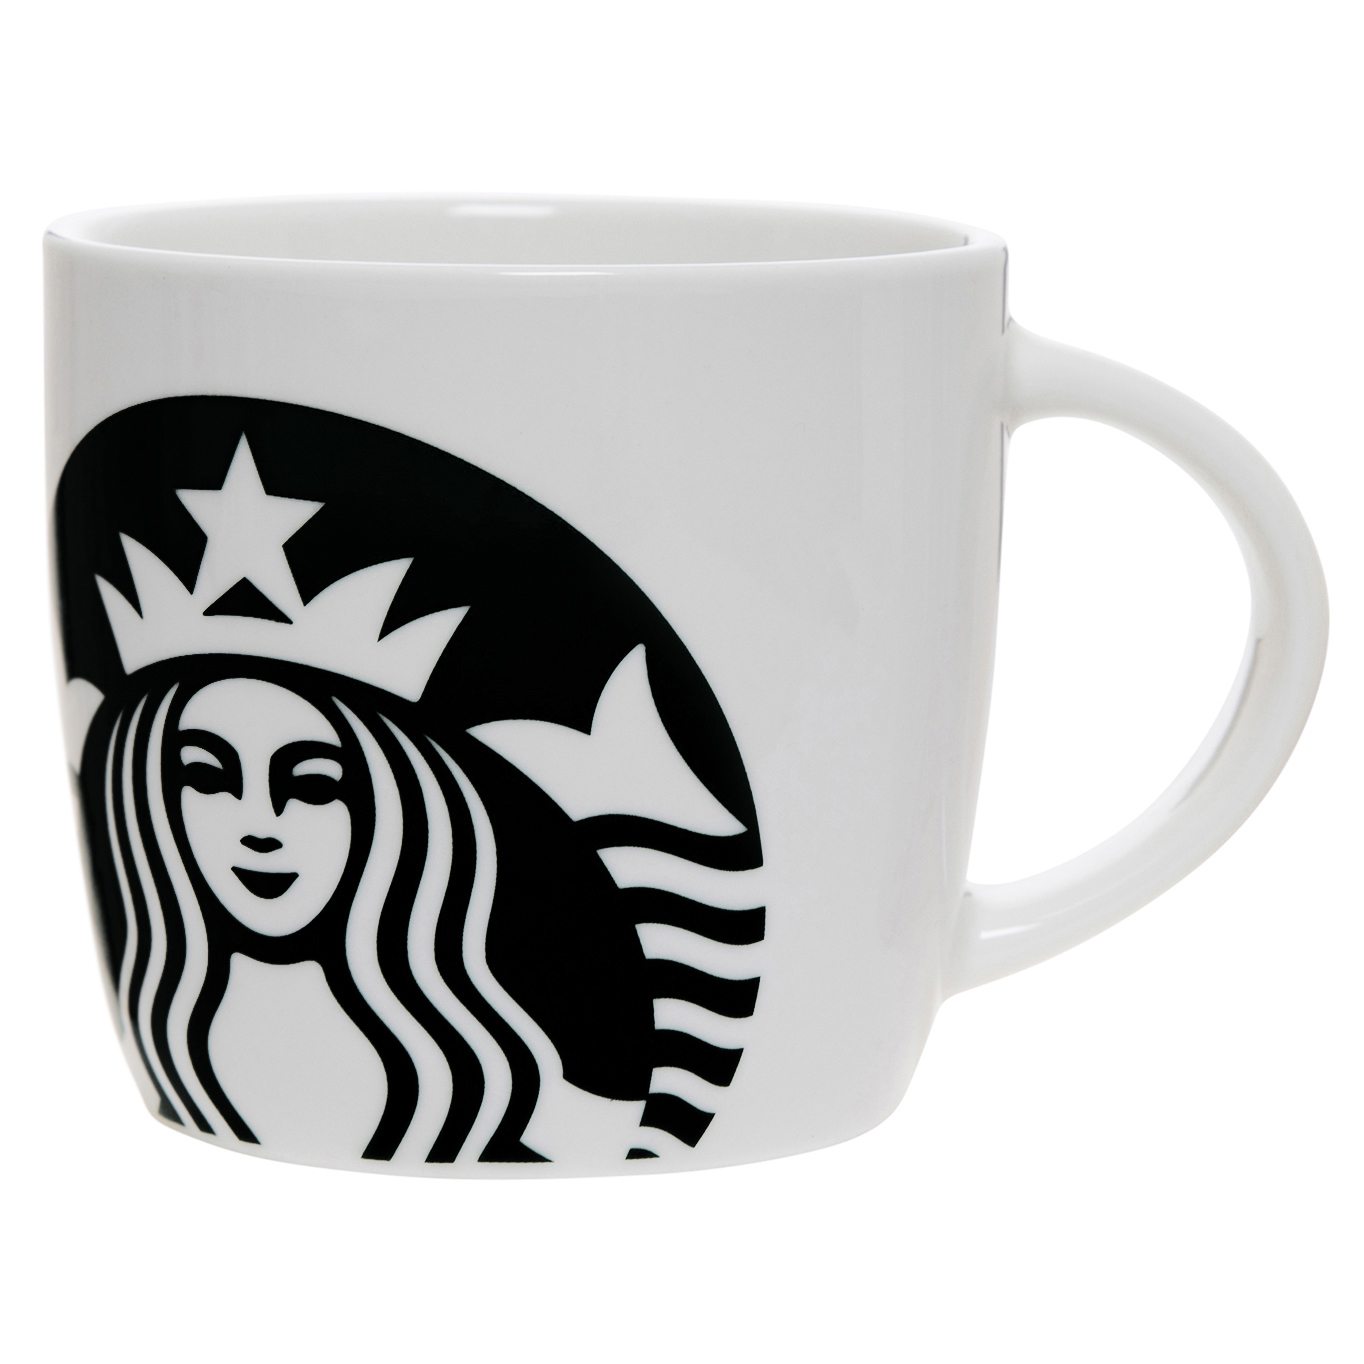 Starbucks 14 Ounce Ceramic White Mug